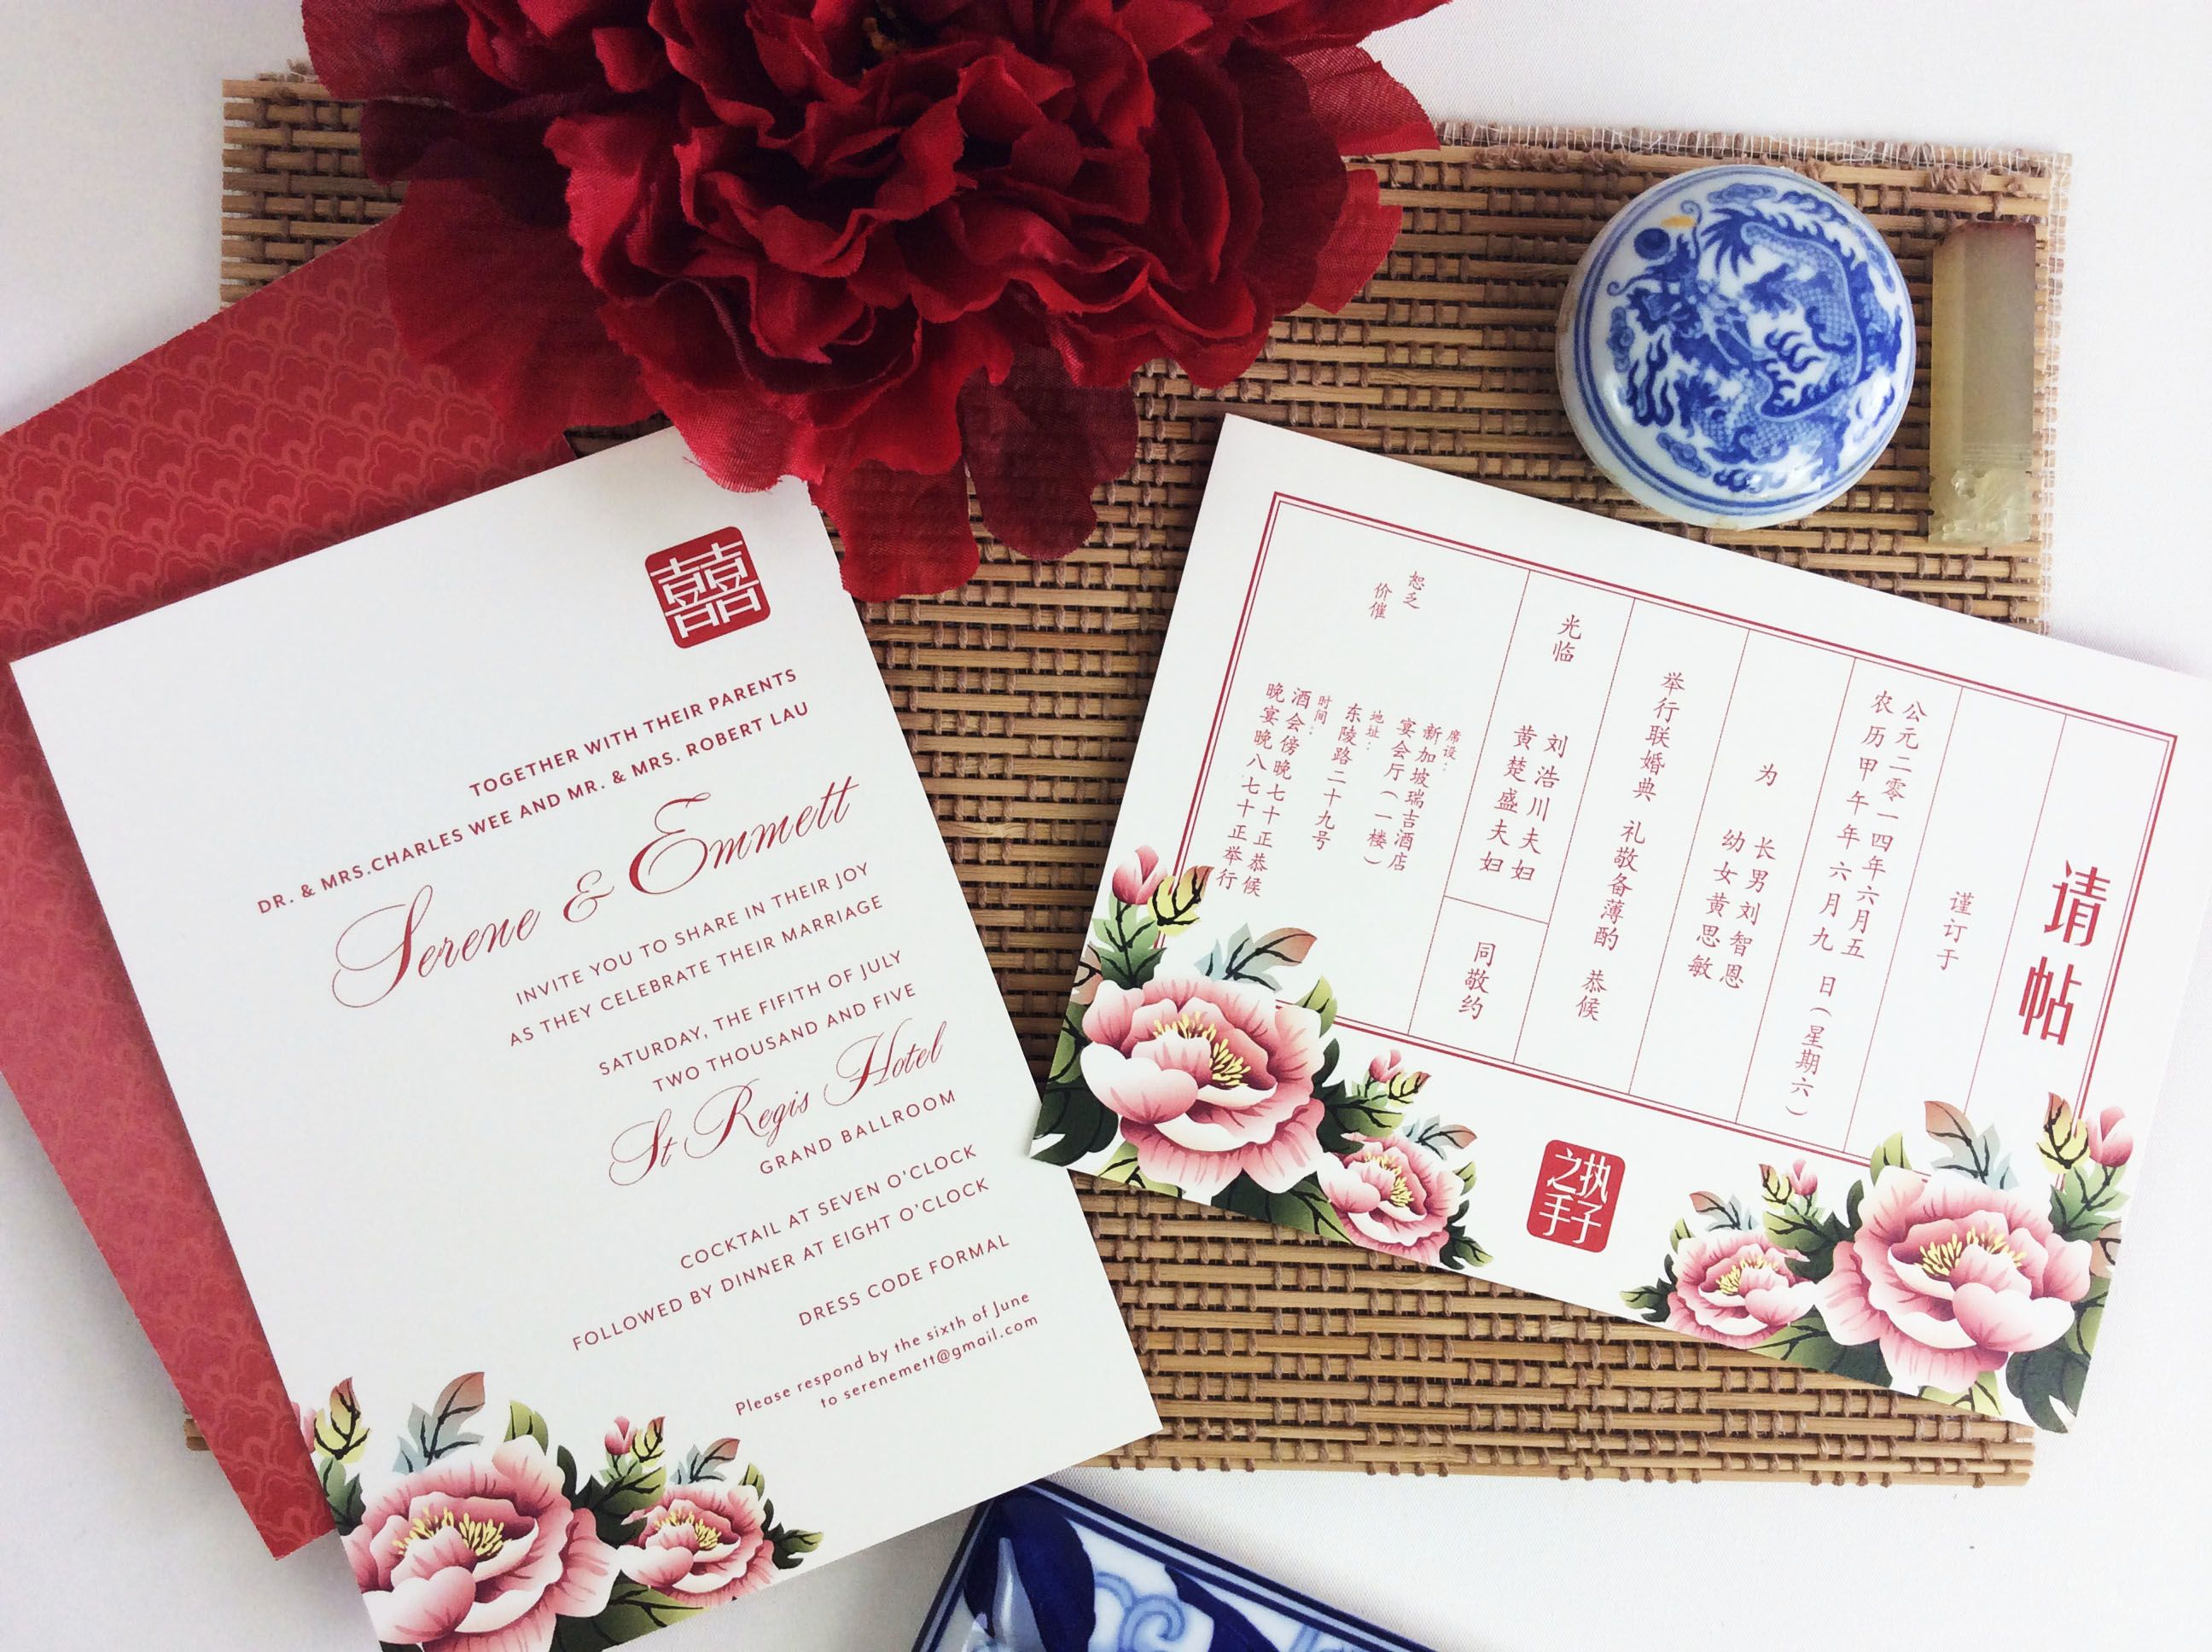 standard size wedding invitation%0A Invitation ideas